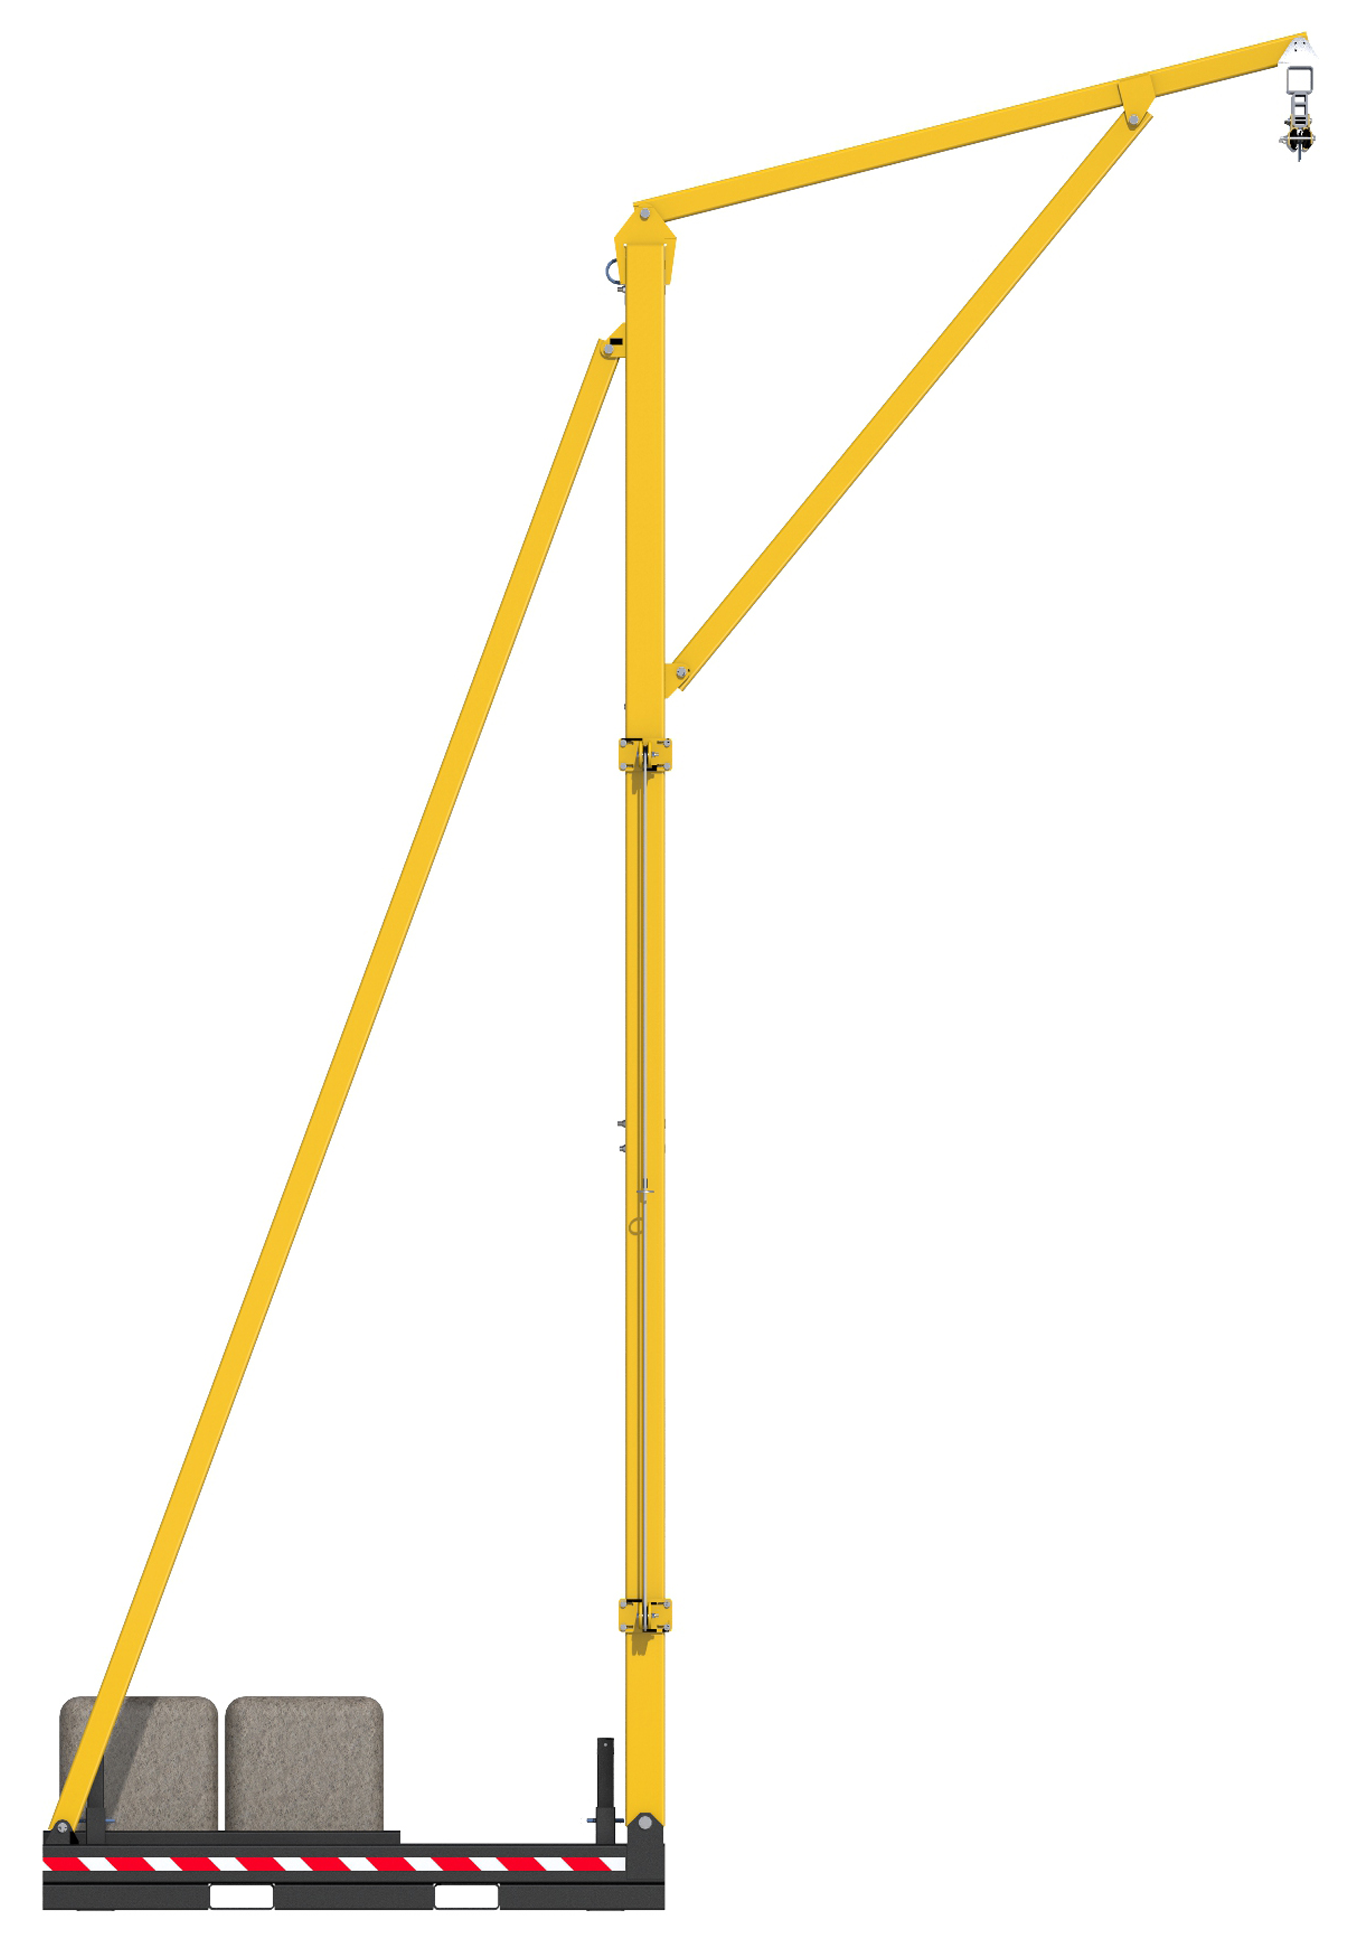 FlexiGuard Counterweighted Overhead 32 ft. Rail Fall Arrest System, 22 ft. Ht., Counterweights Included, Side View